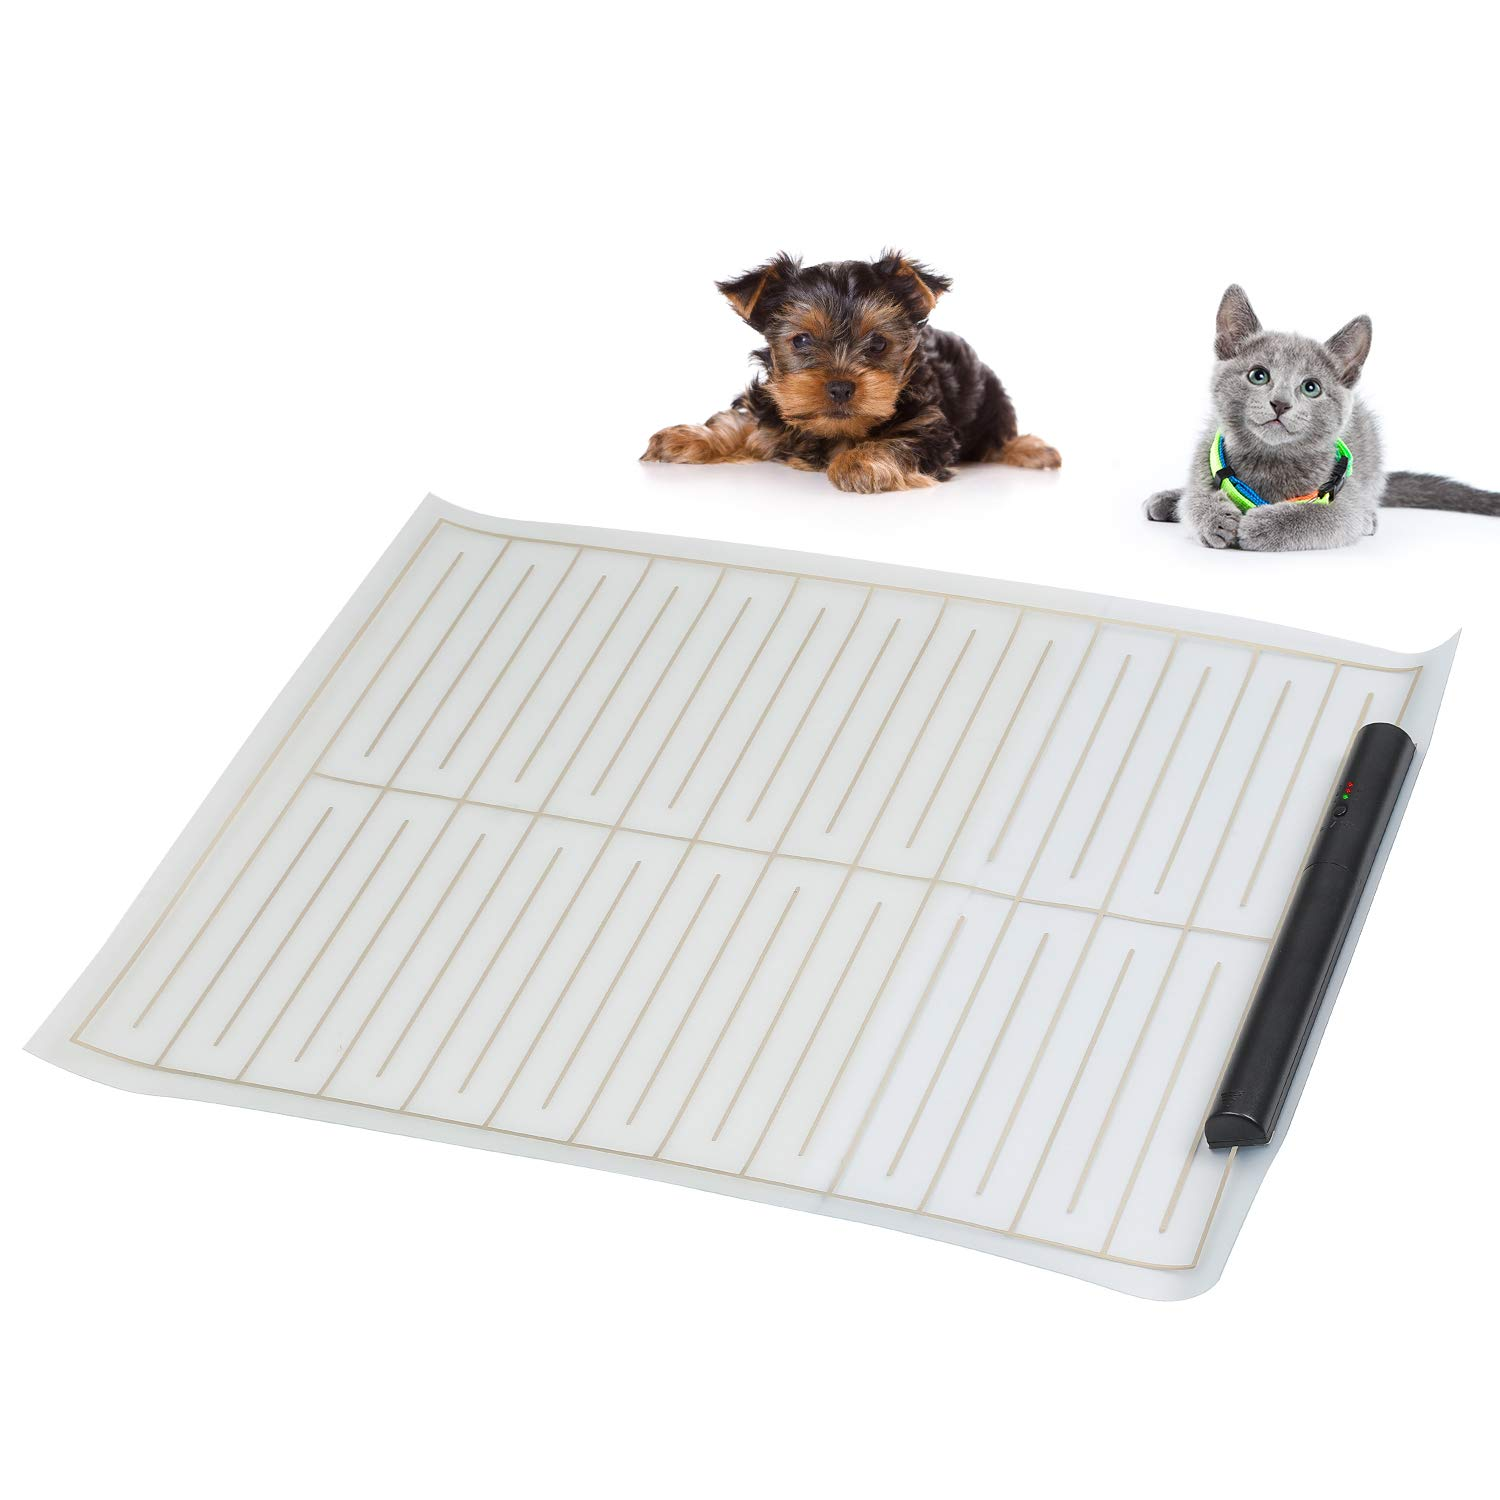 ASSENIO Scat Mat for Dog 2020 Upgraded, Indoor Electronic Pet Shock Training Mat for Dogs and Cats, Keep Pets Away from Unwanted Places